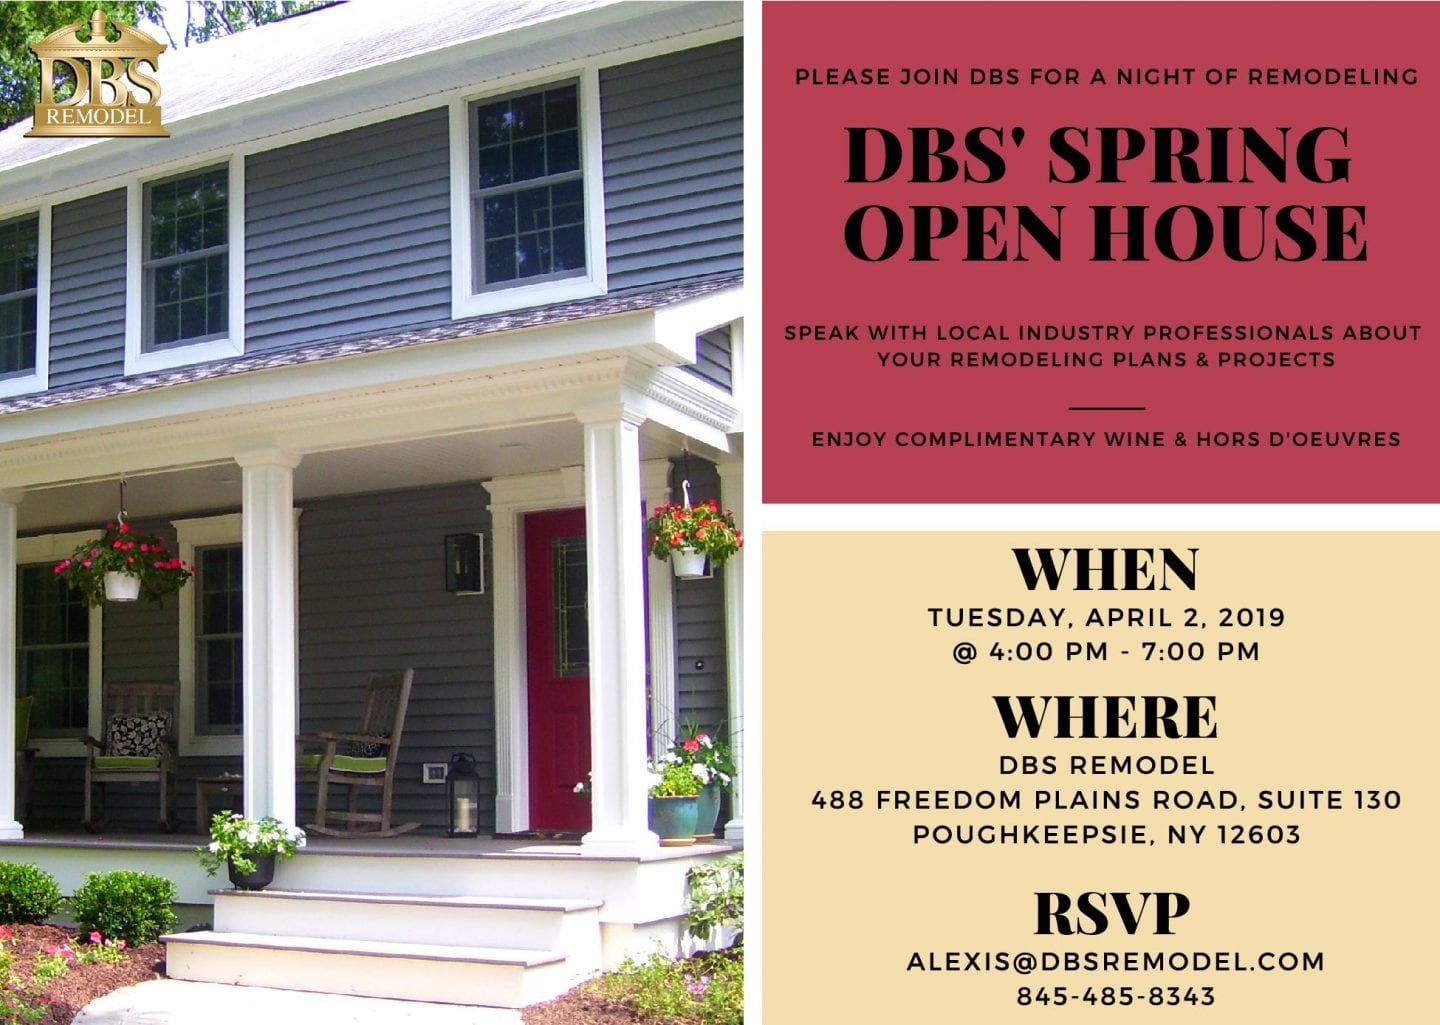 Remodeling Night: DBS' Spring Open House